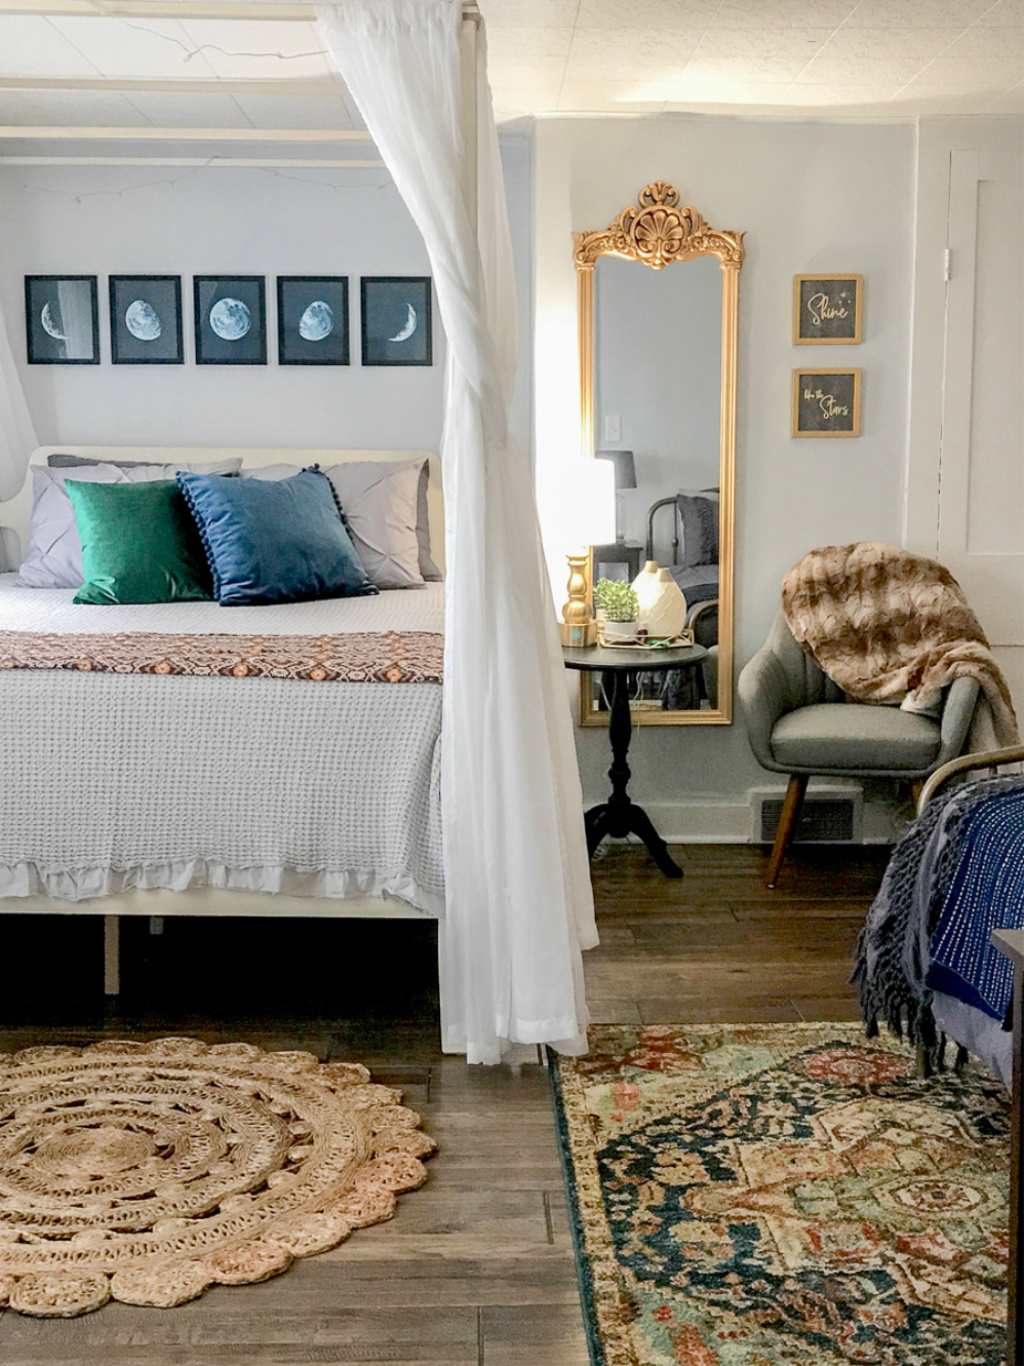 Boho Bedroom Airbnb Butler Pa Suite Thyme Diyshowoff Diy Show Off Diy Decorating And Home Improvement Blogdiy Show Off Diy Decorating And Home Improvement Blog